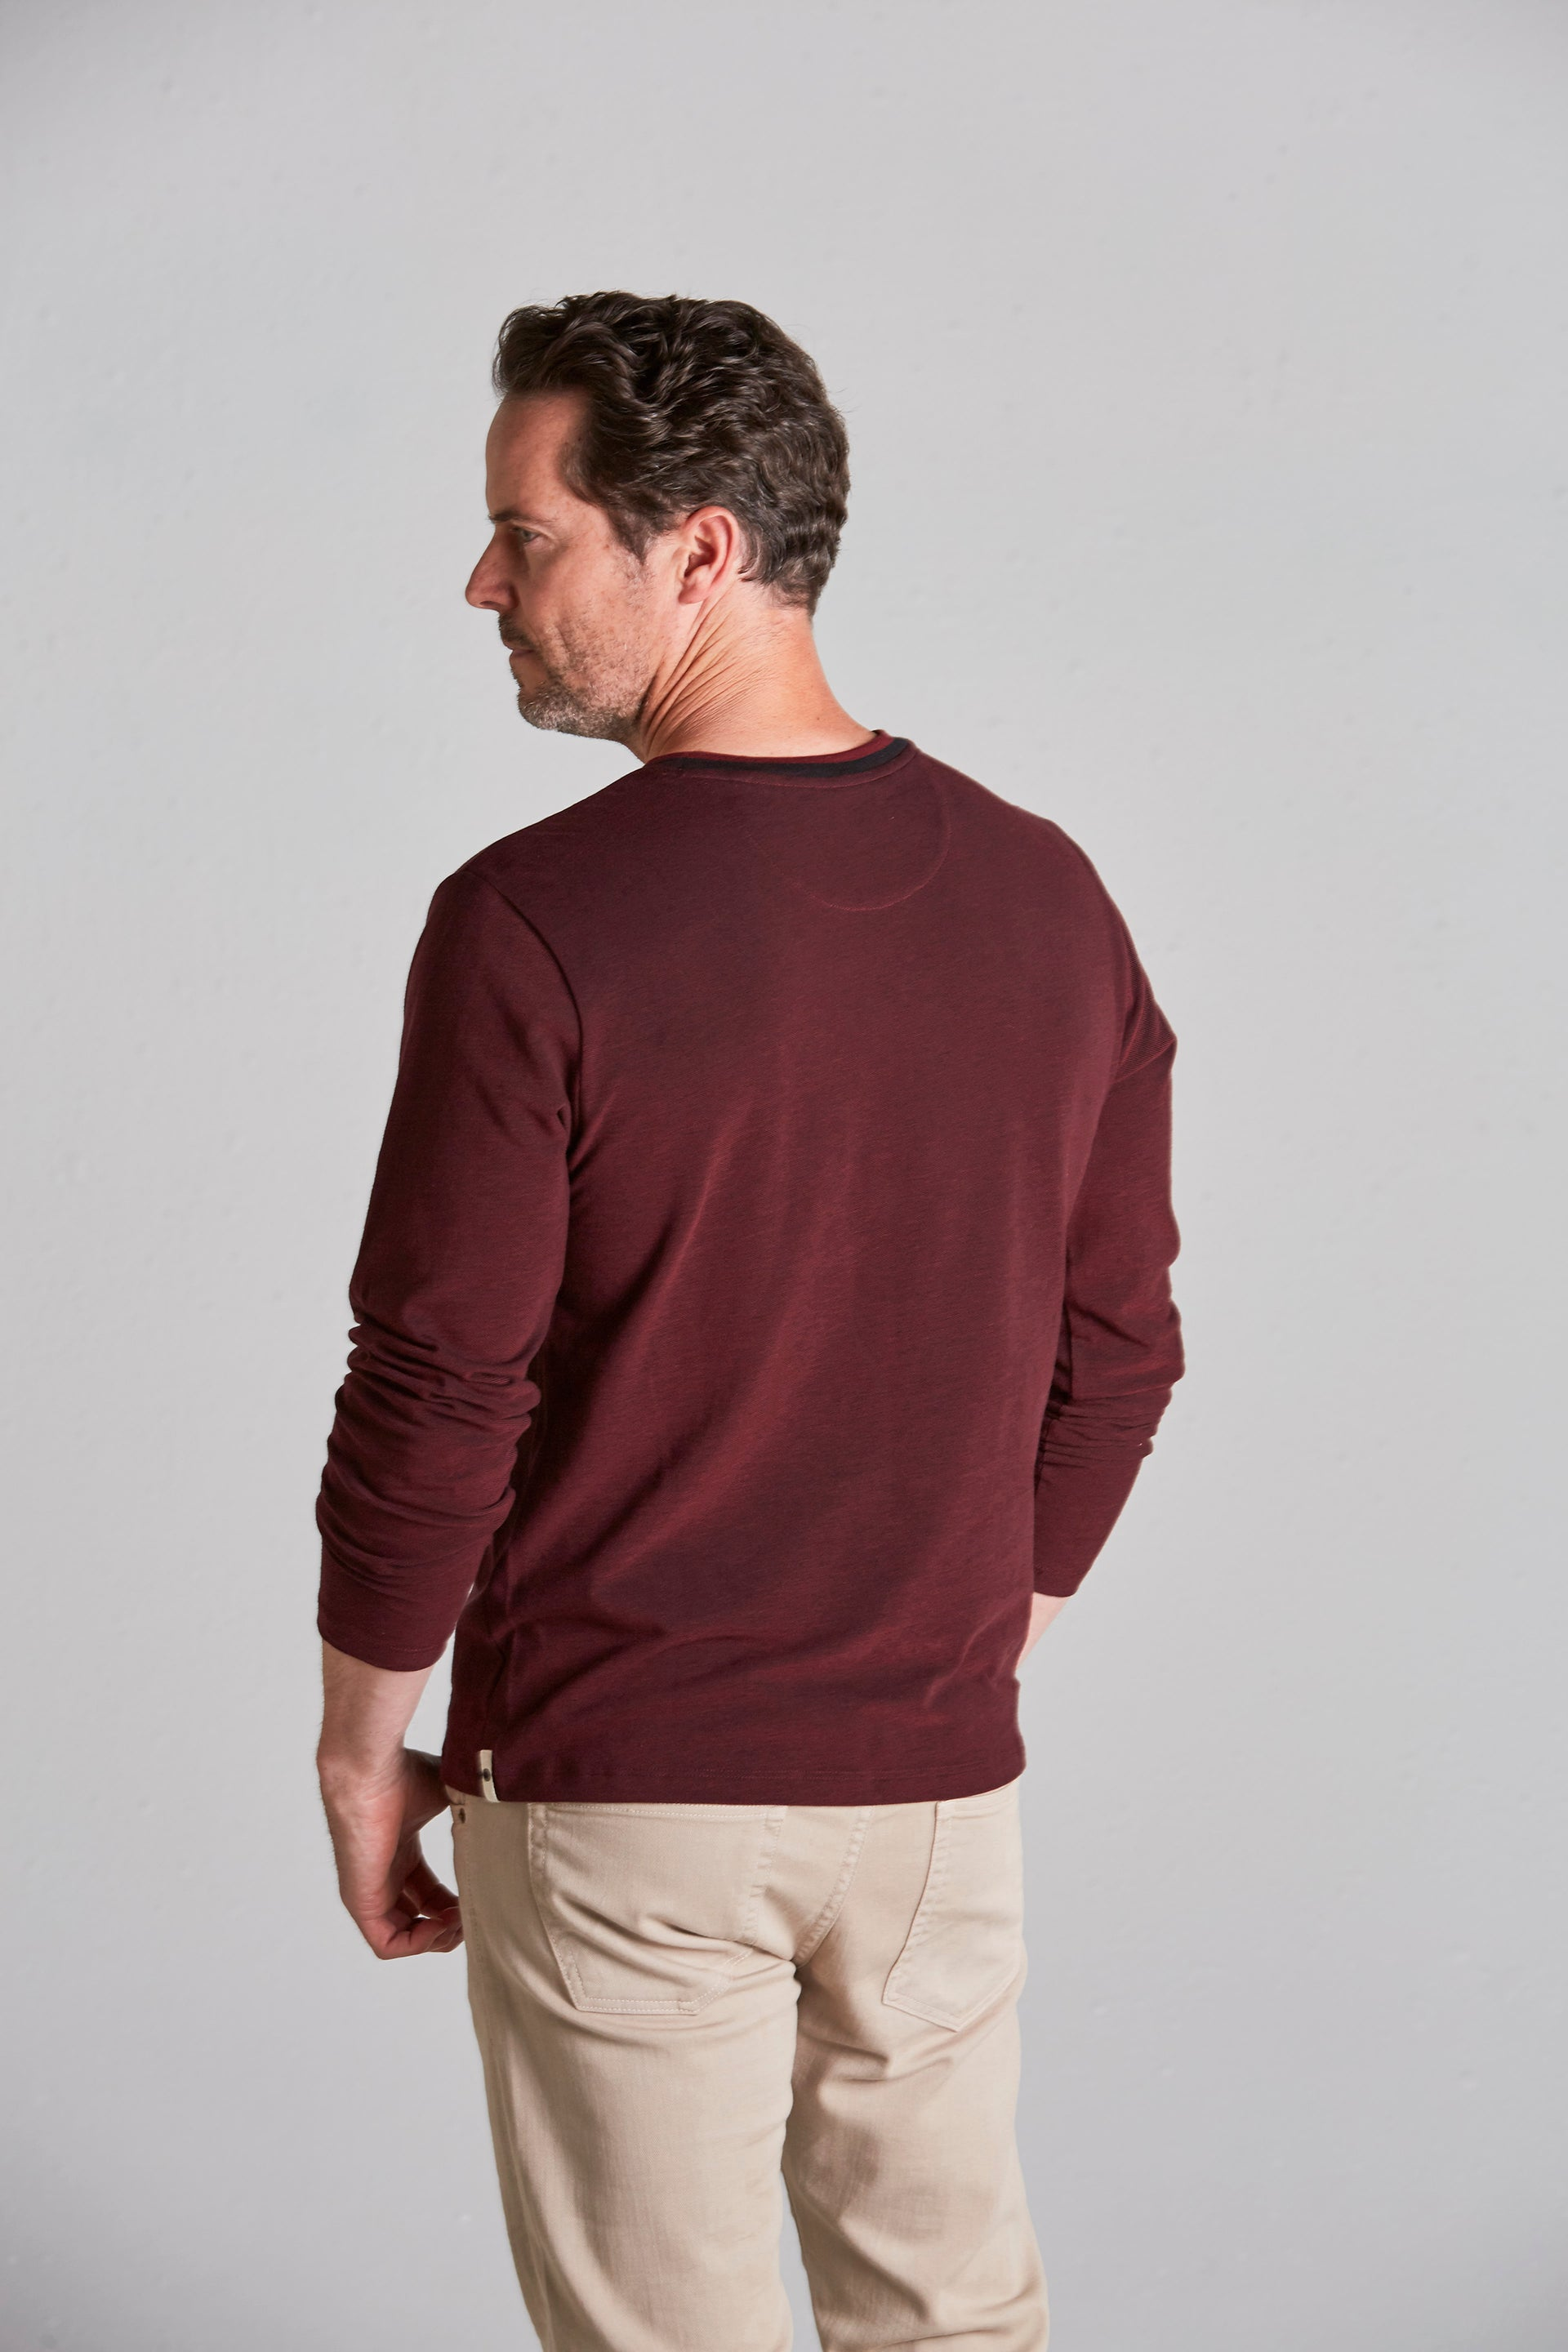 Load image into Gallery viewer, Crain Oxford Crew Long Sleeve Tee - Burgundy